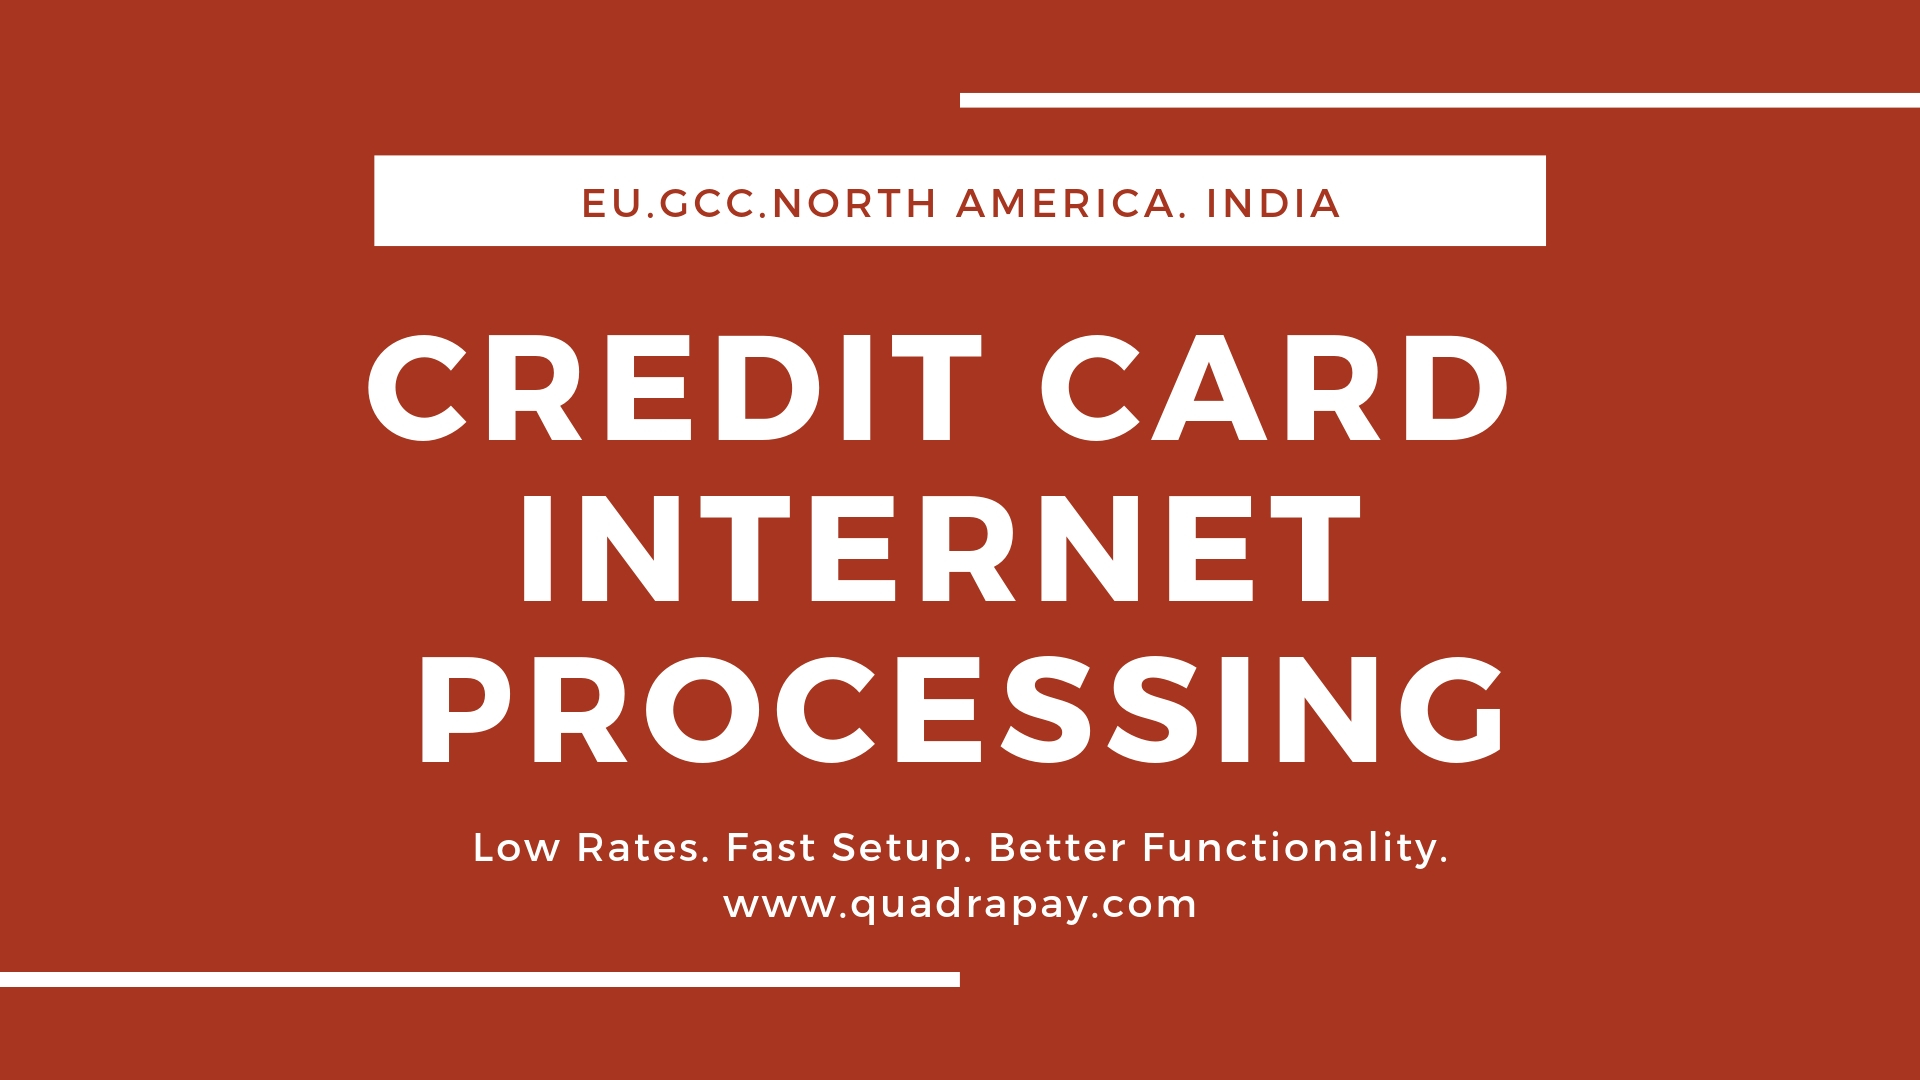 CREDIT CARD INTERNET PROCESSING